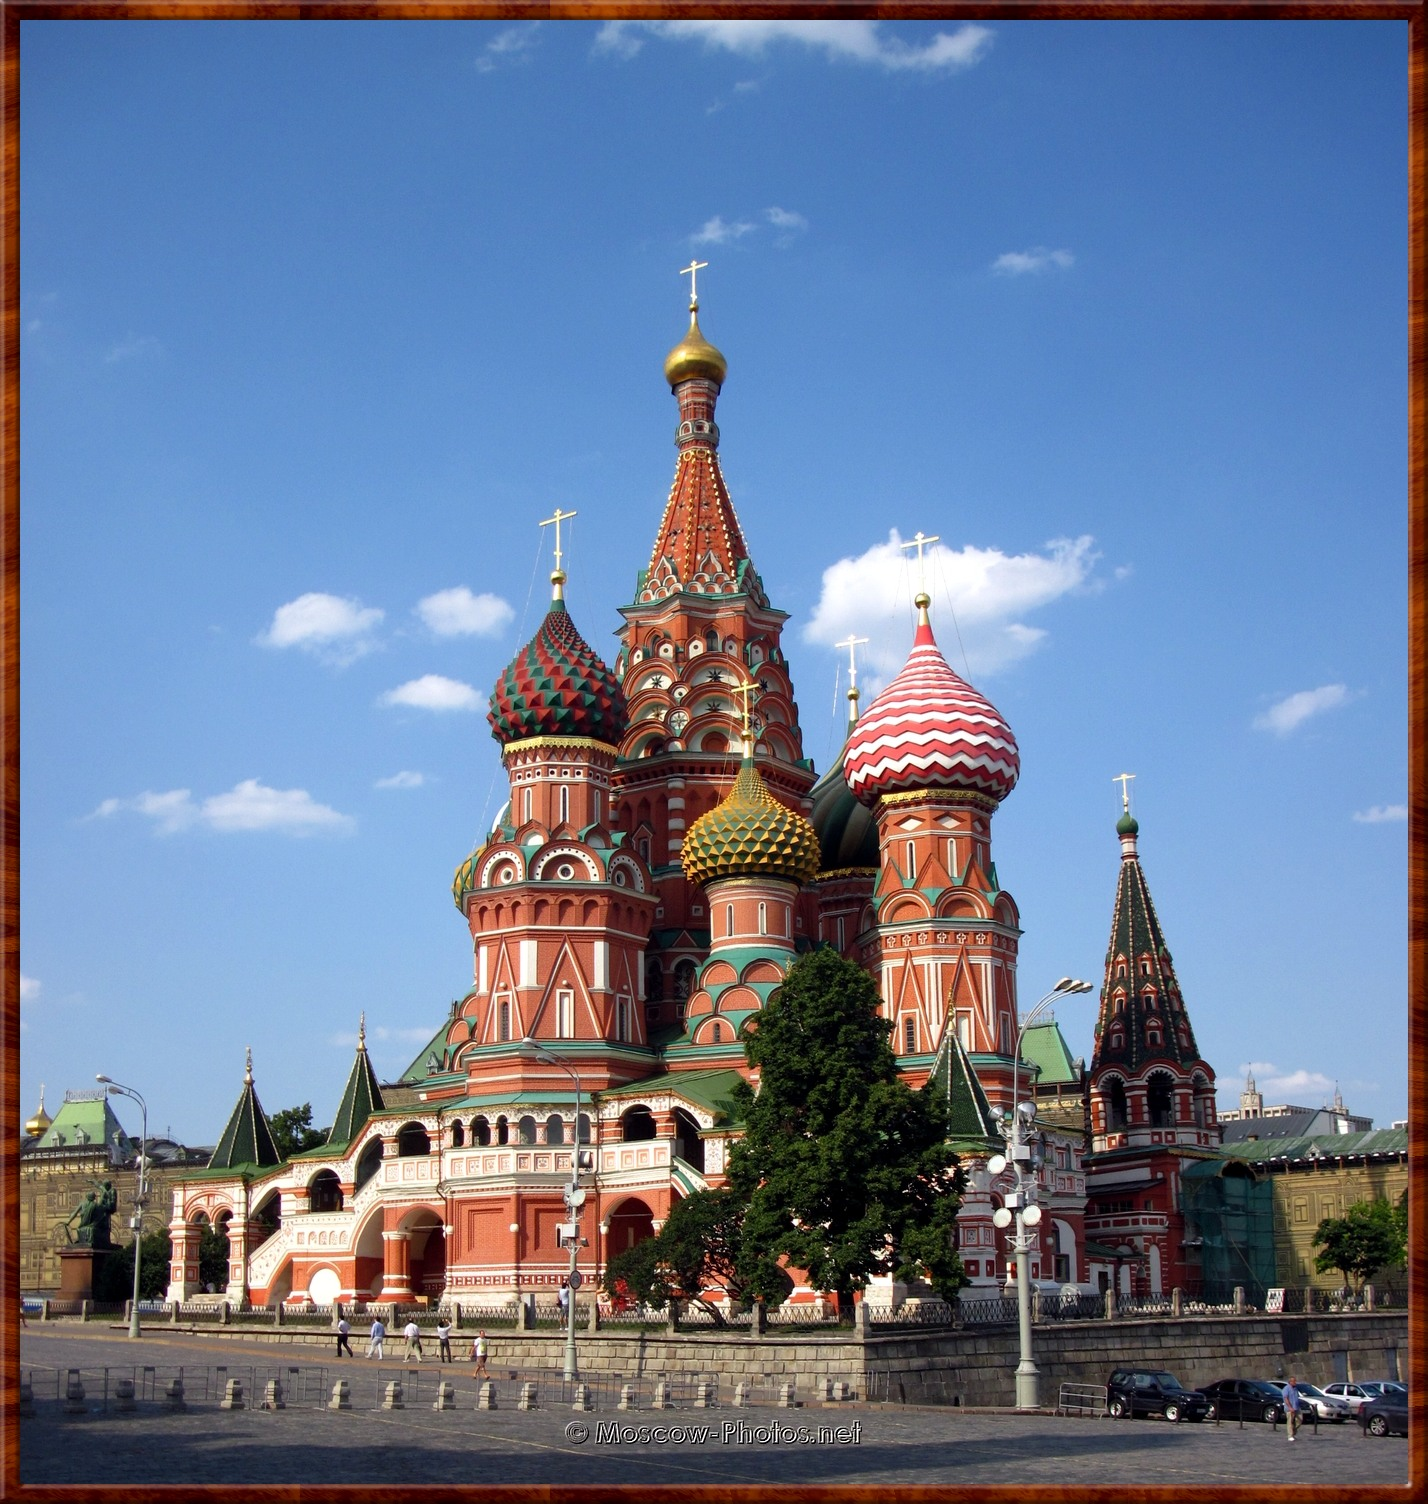 St. Basil's the Blessed (Protection Veil of Our Lady) Cathedral